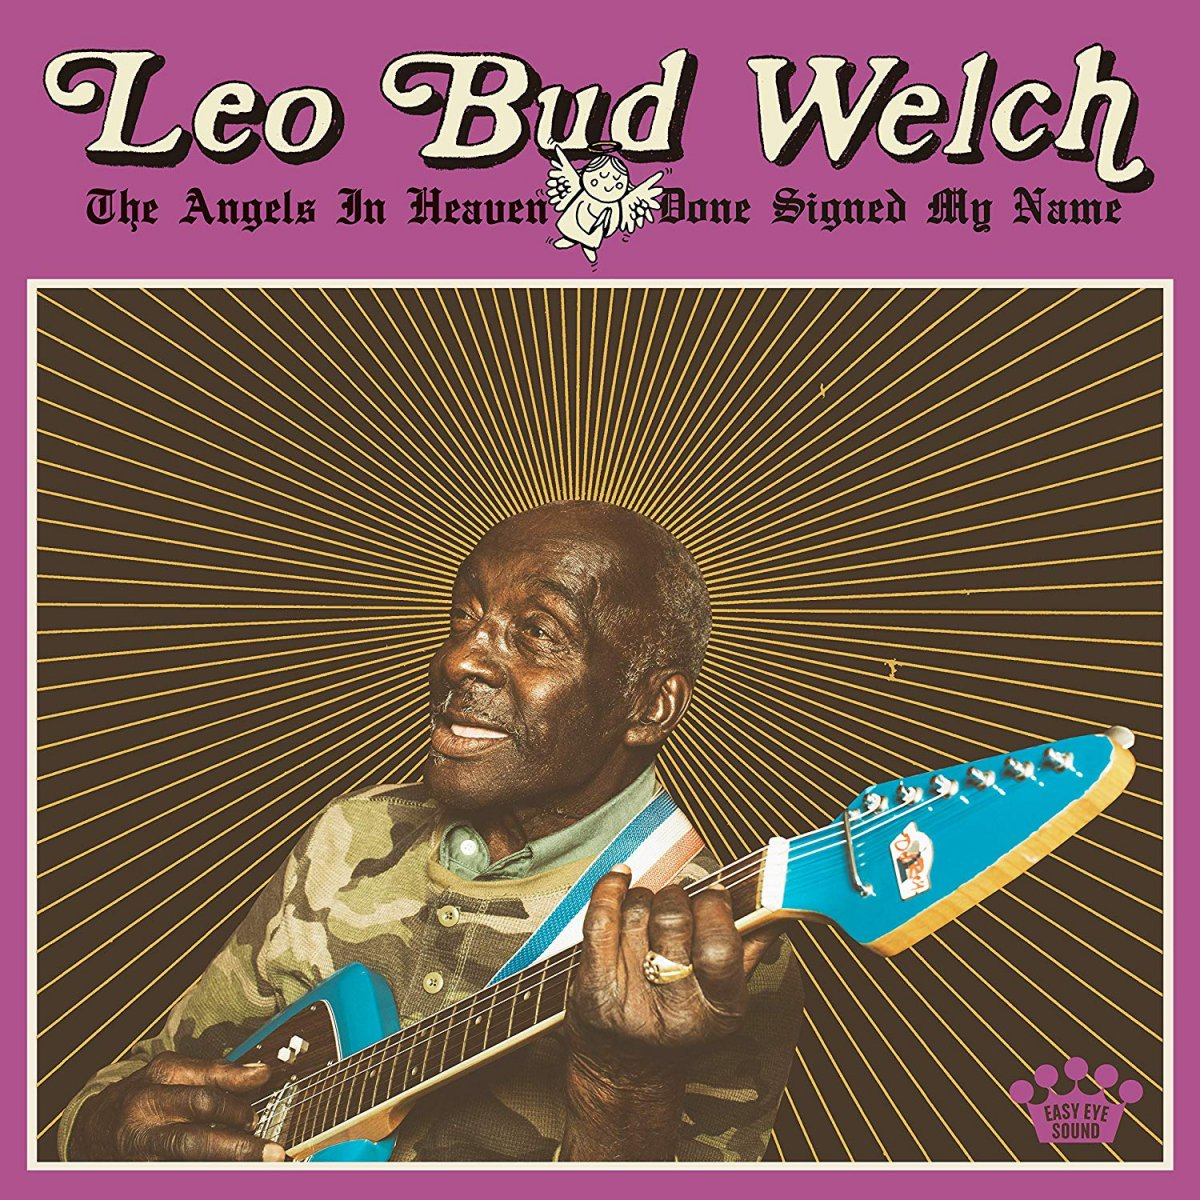 Leo Bud Welch The Angels in Heaven Have Done Signed My Name